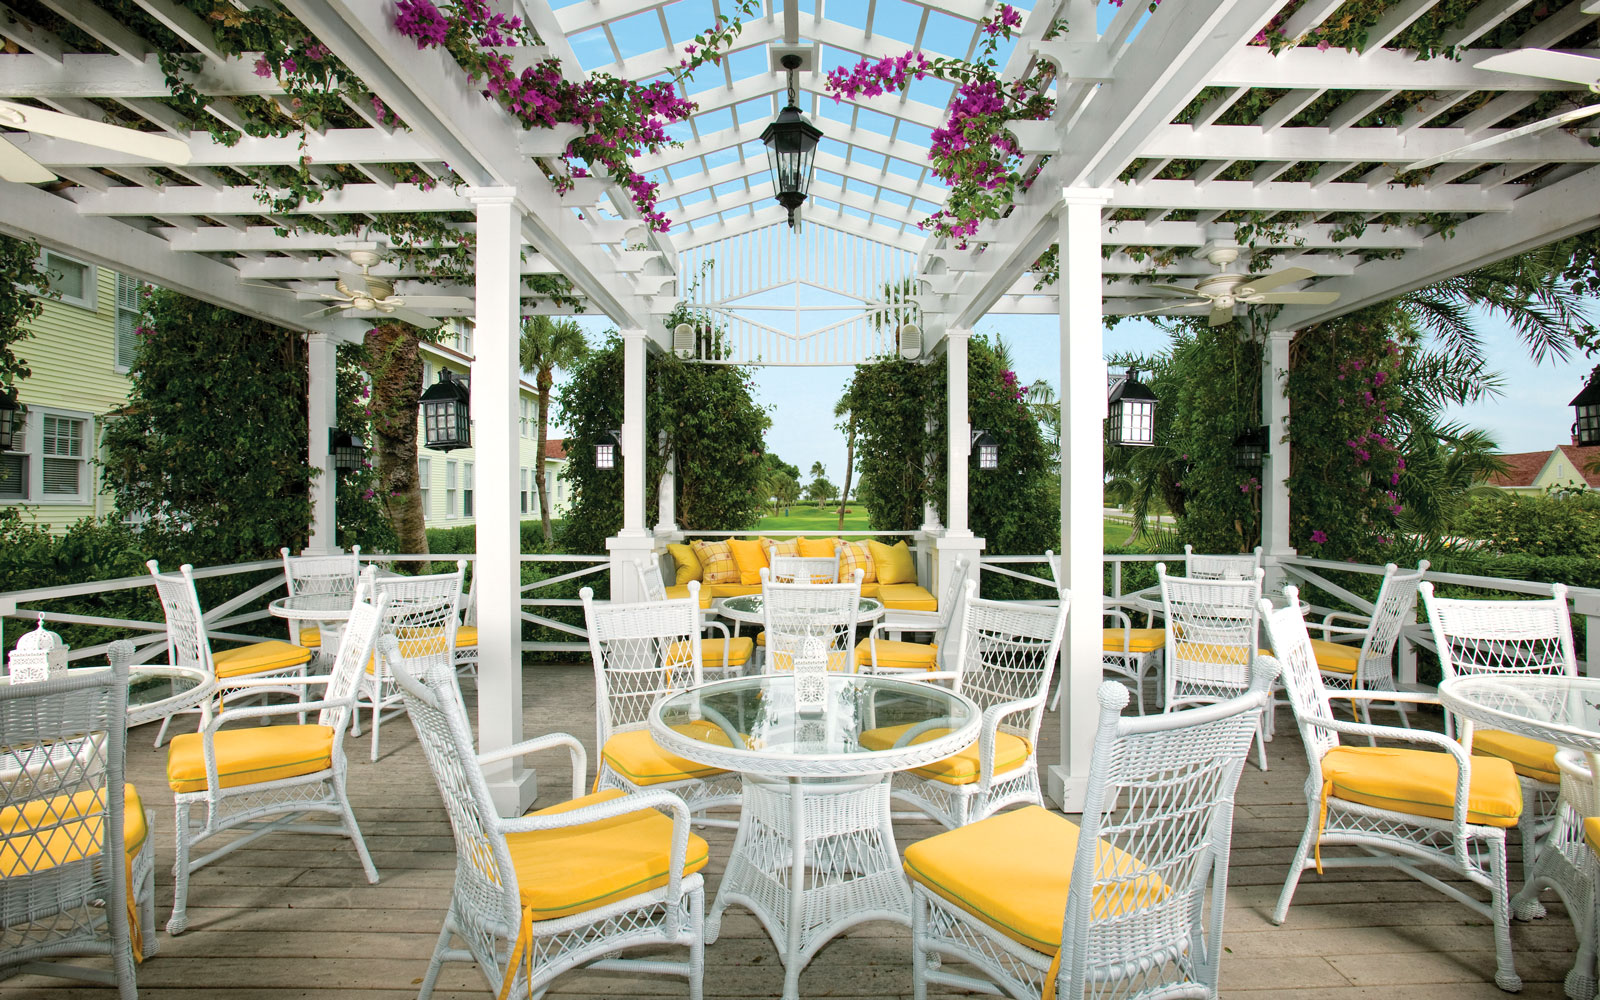 11. Gasparilla Inn in Florida